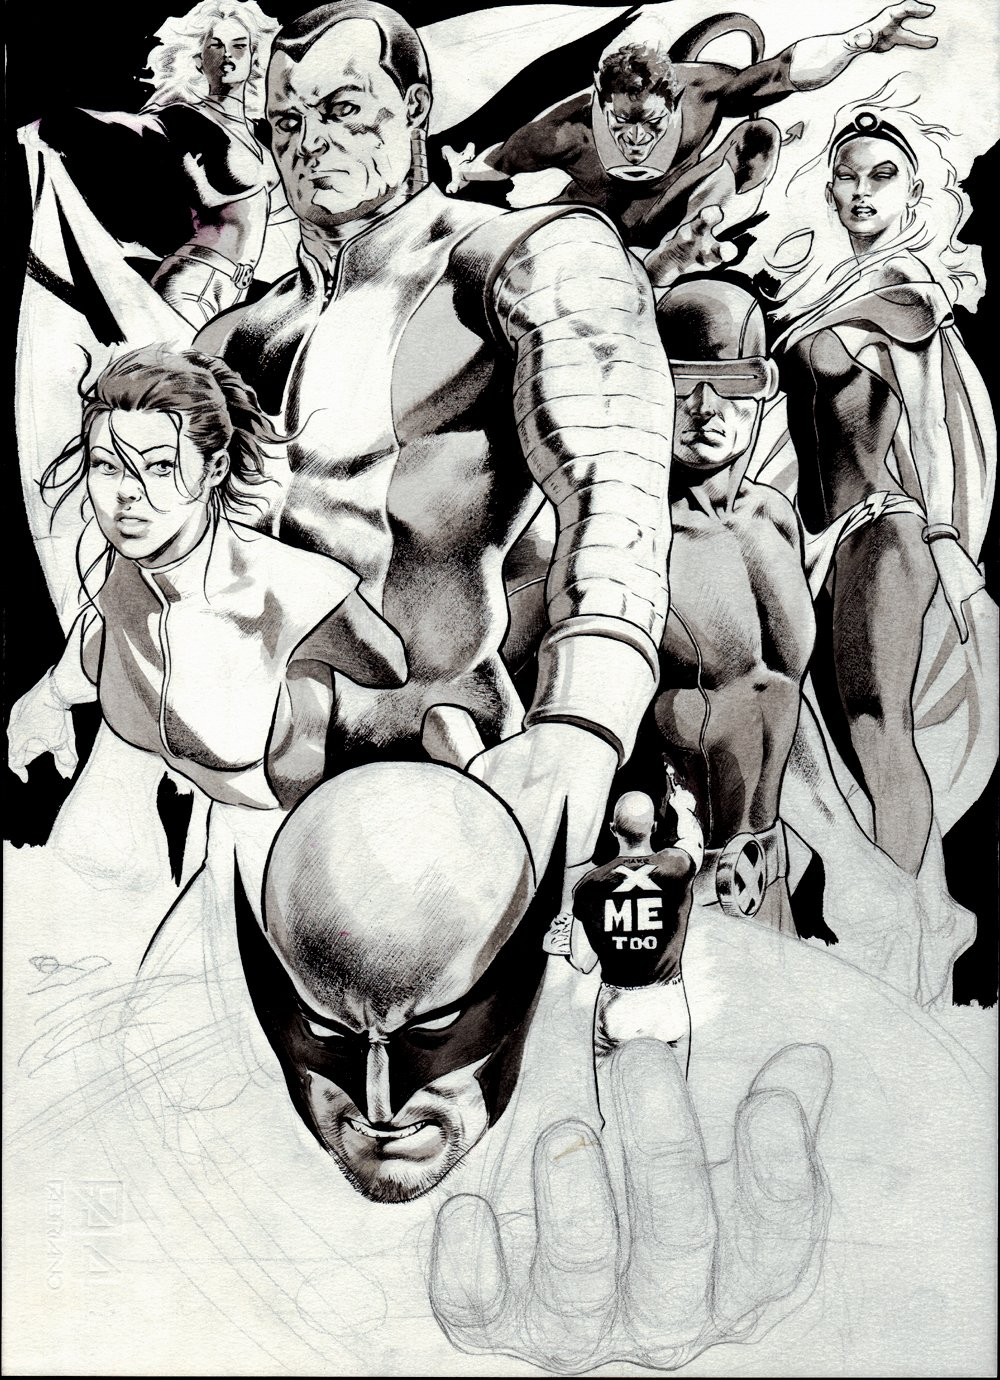 X-Men Pinup SOLD LIVE ON 'DUELING DEALERS PRO-AM' EPISODE #7 PODCAST ON 9-14-2021 (RE-WATCH THIS FUNNY ART SELLING SHOW HERE)